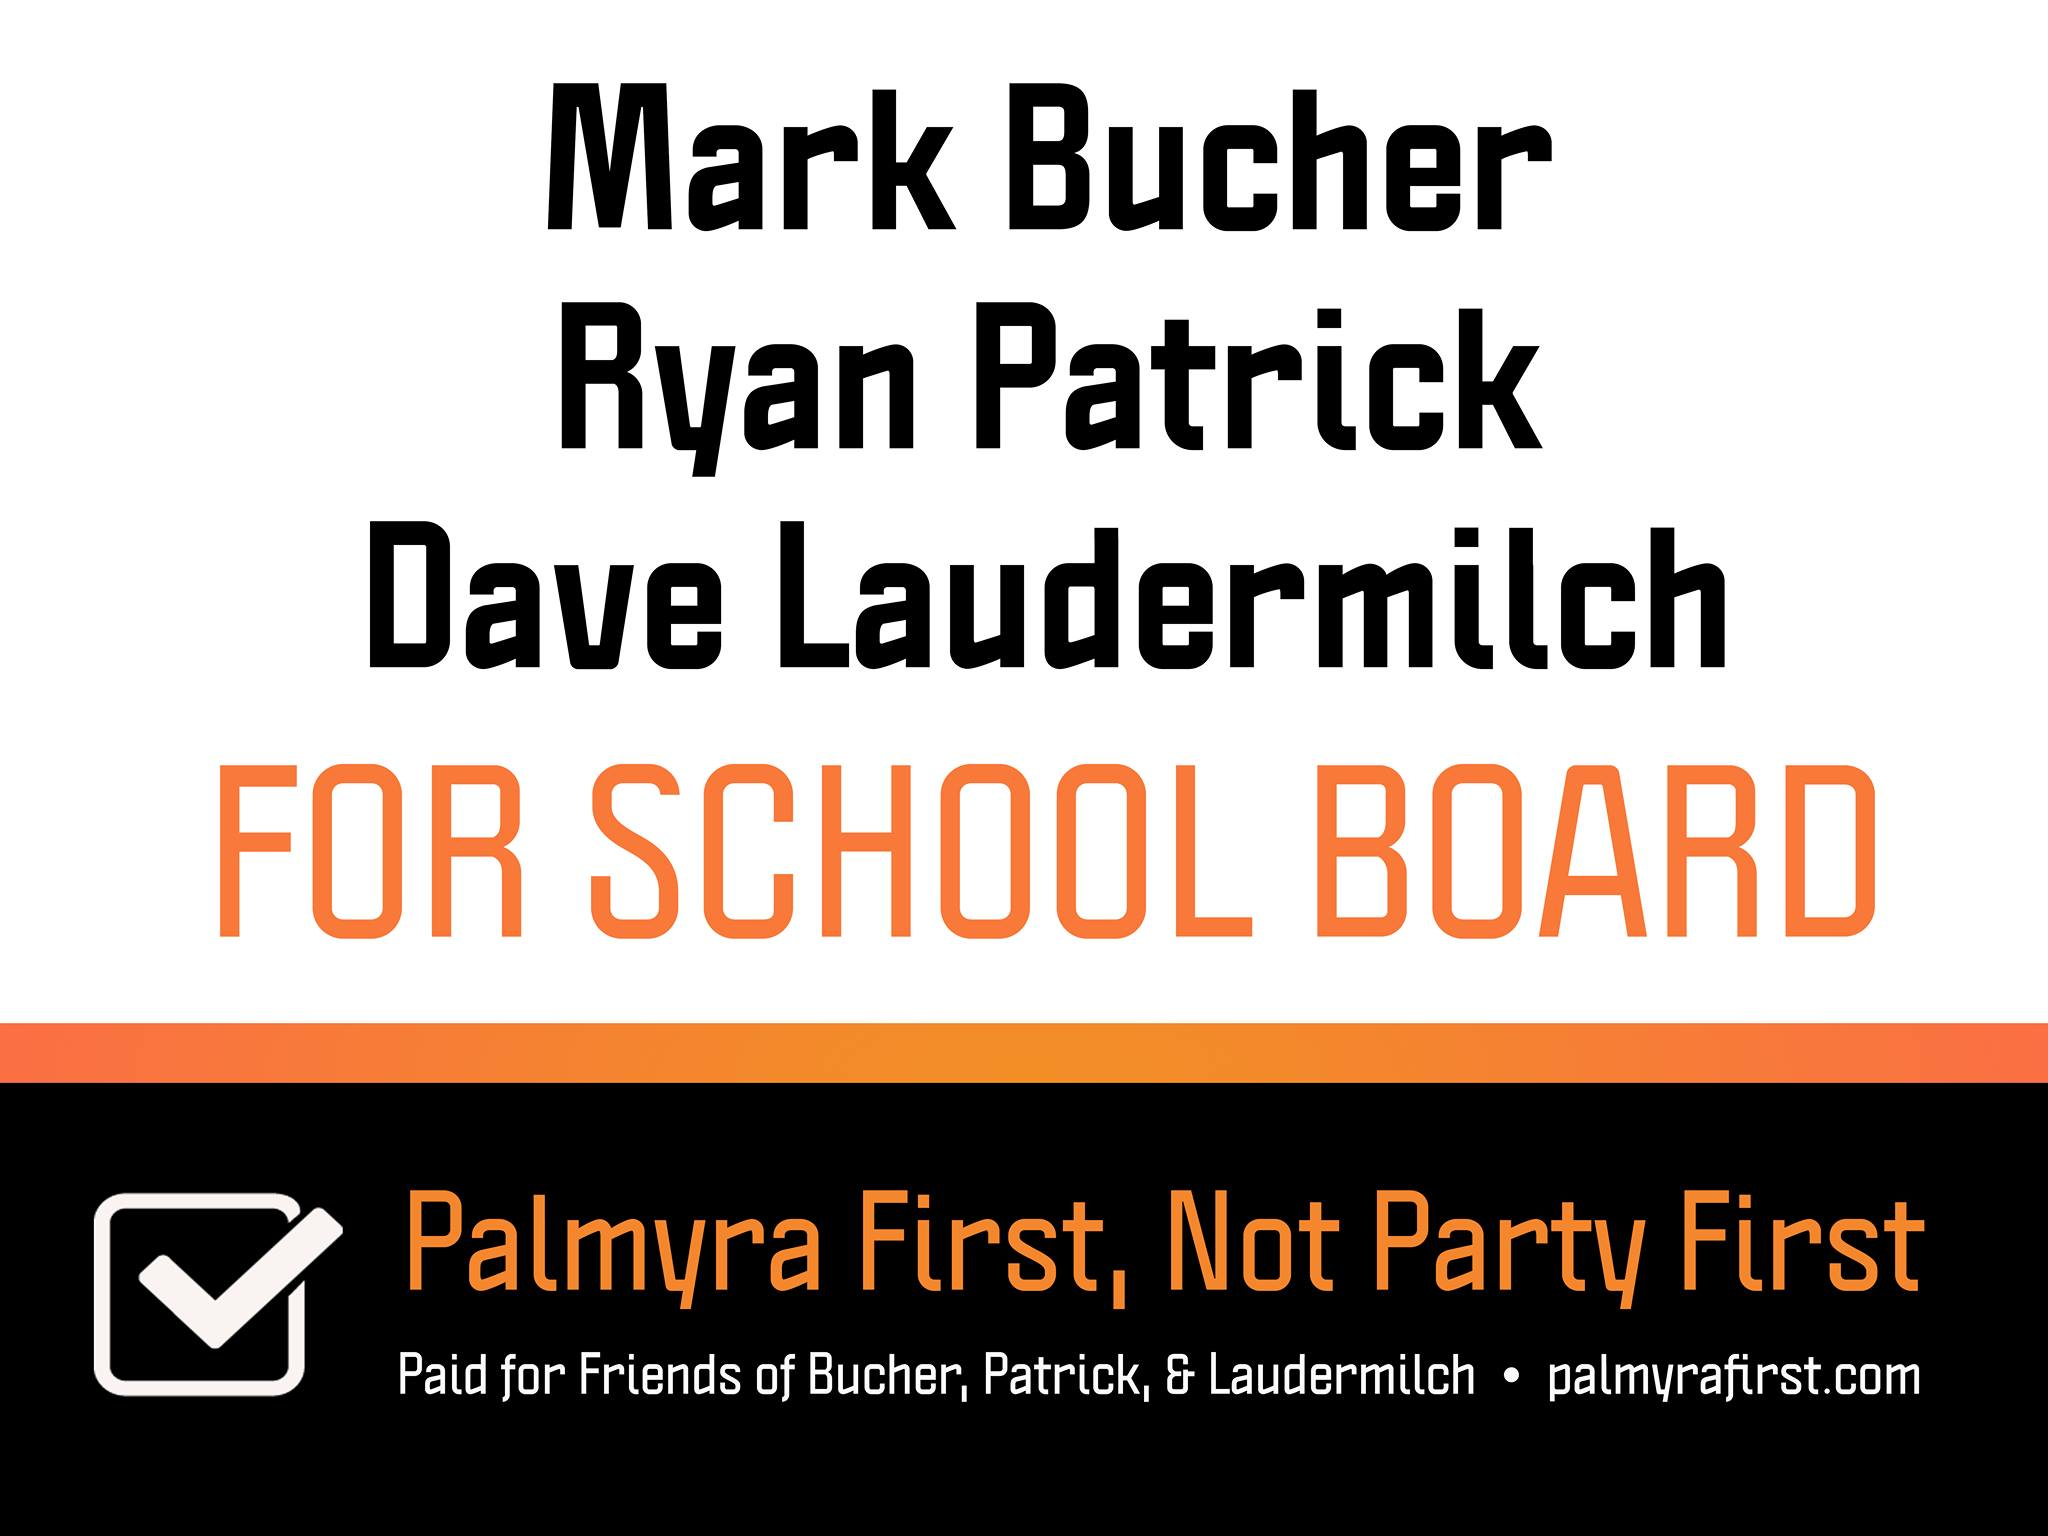 Friends of Bucher Patrick and Laudermilch